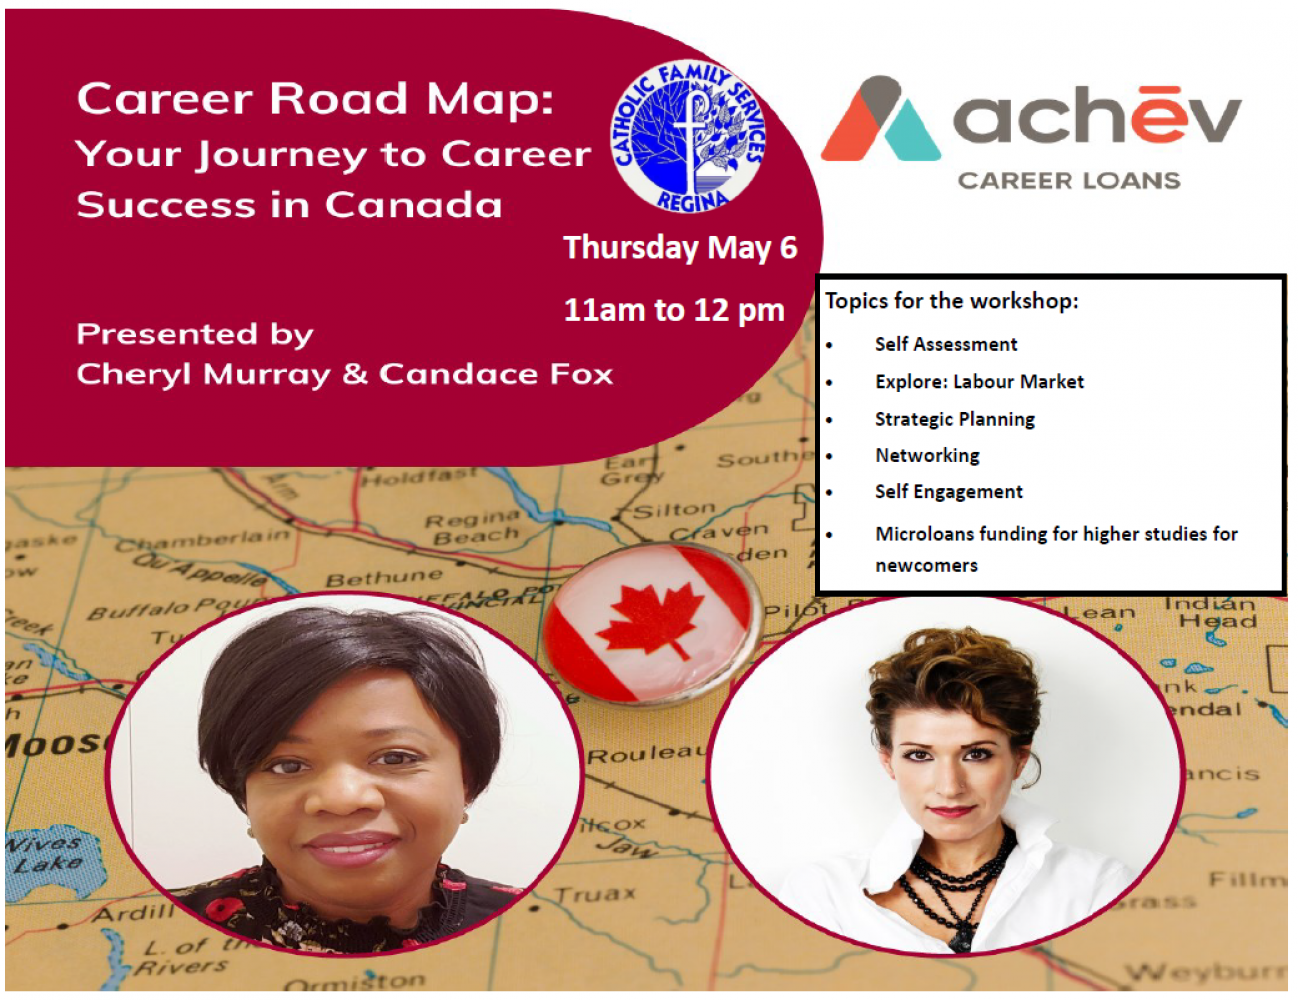 Information Session with Career Loans - Thursday, May 6th